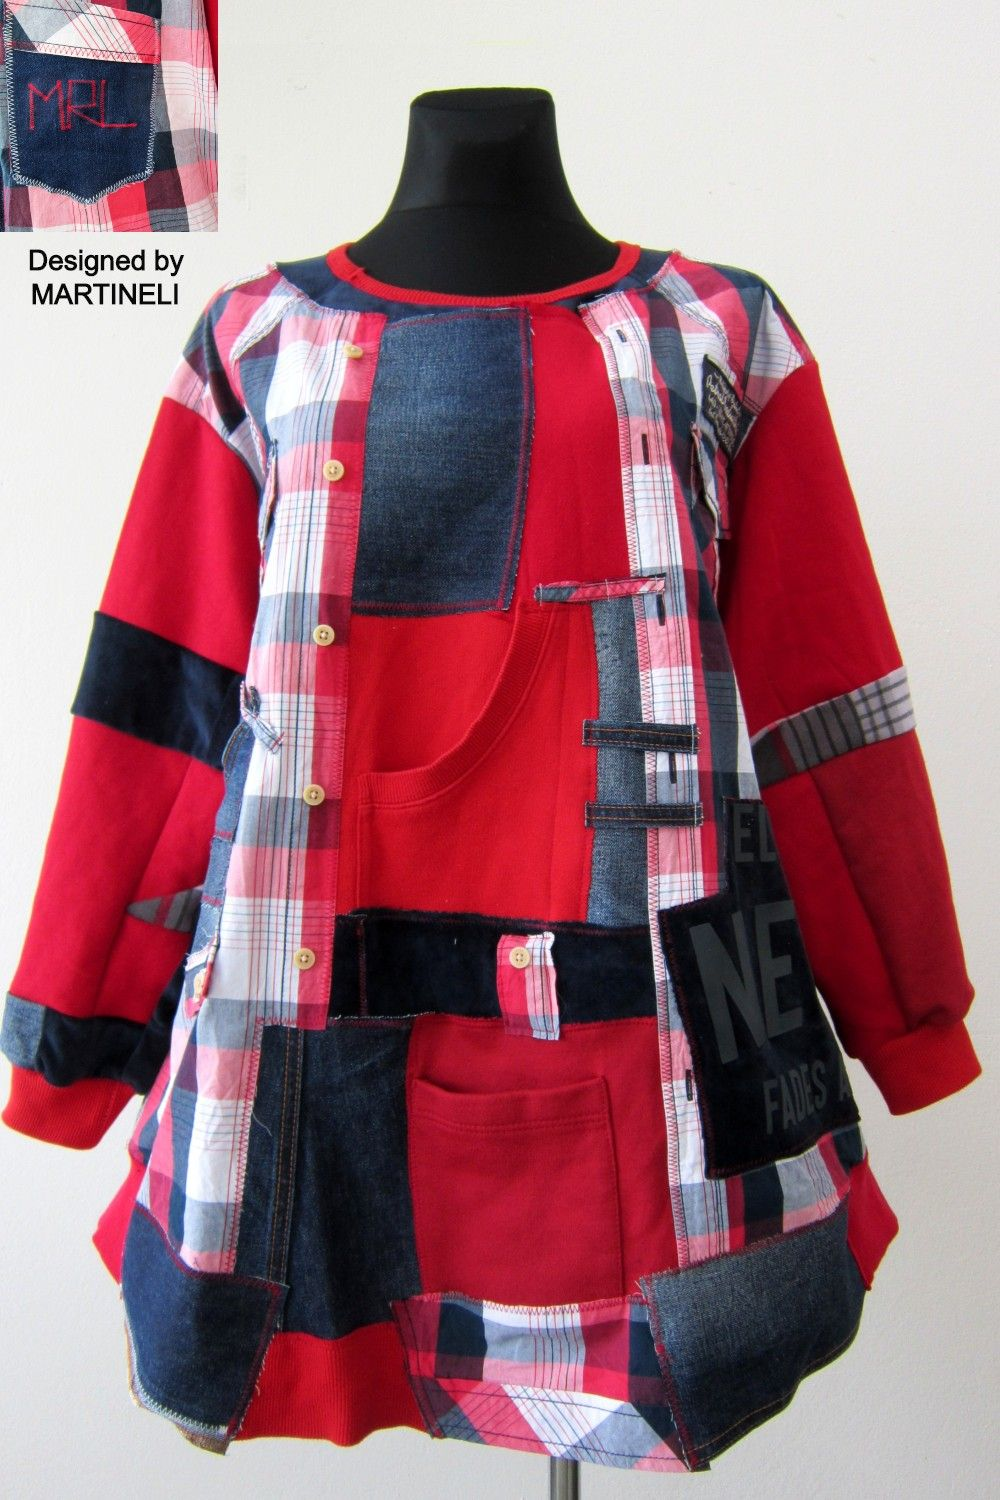 4XL Plus Size Red Plaid Sweatshirt Dress,Upcycled Clothing For Women,Patchwork Denim Tunic Dress,Oversized Cotton Dress,Street Style Tops